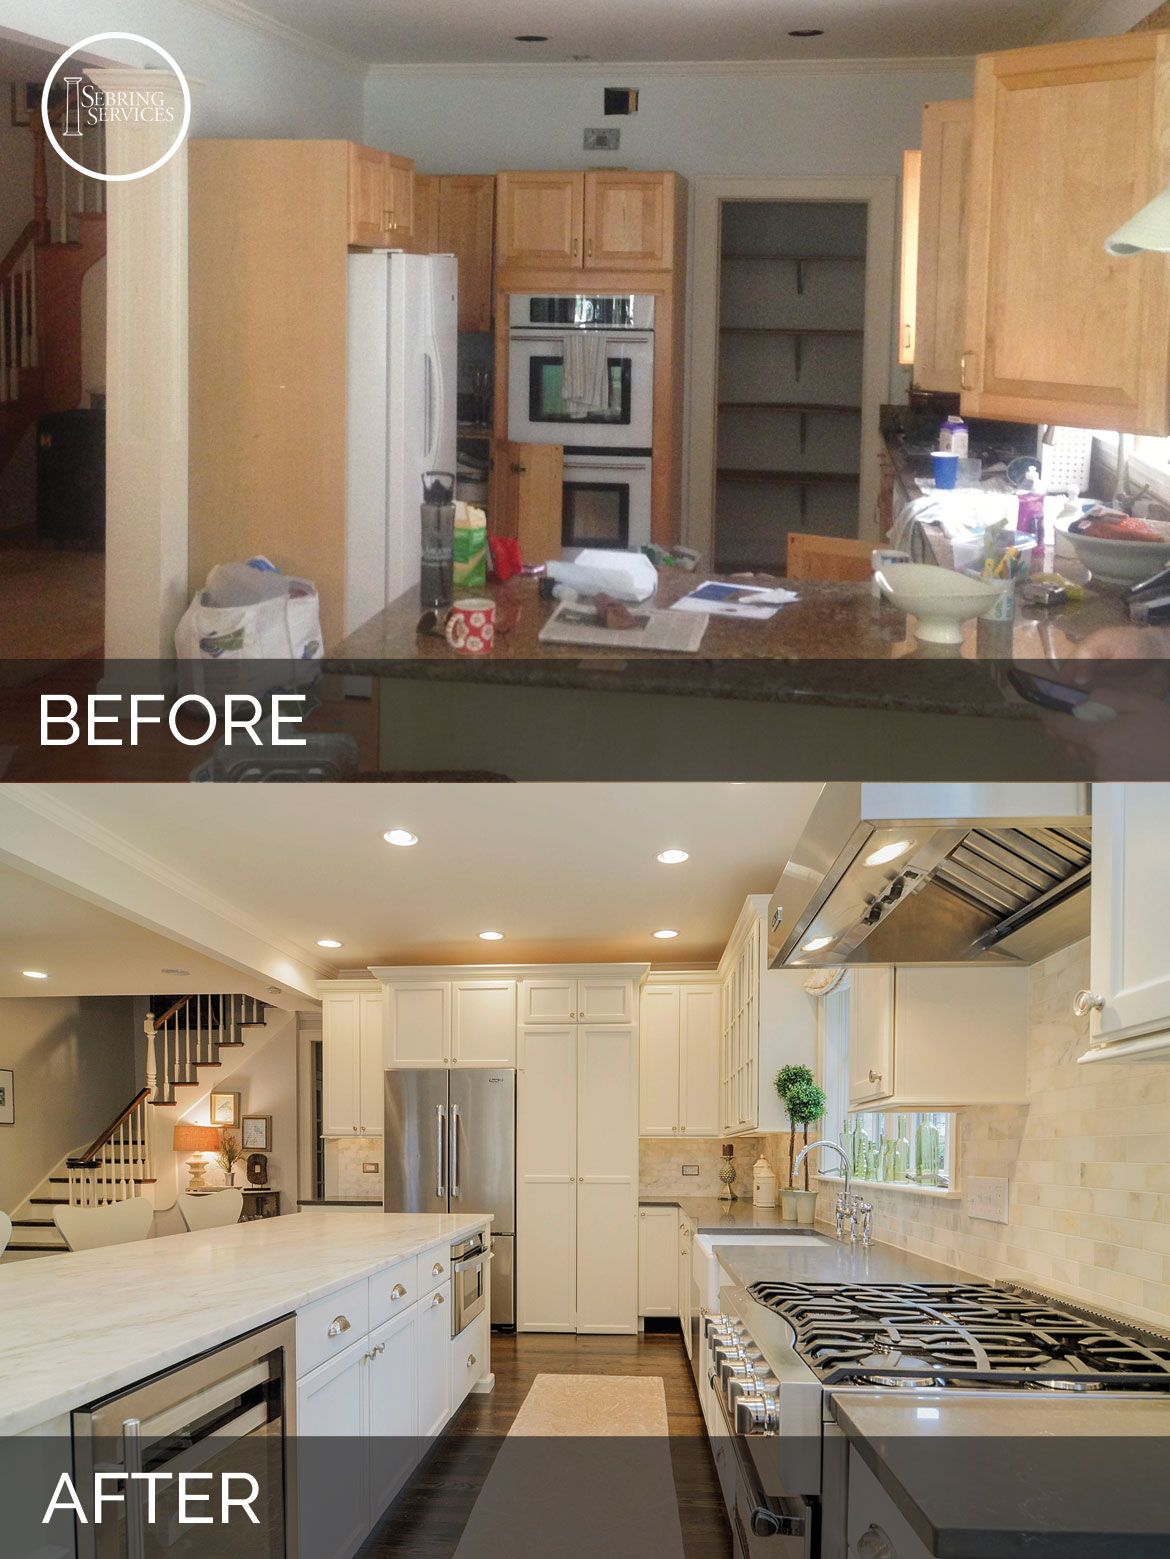 Ben ellen 39 s kitchen before after pictures kitchens for Kitchen cupboard makeover before and after